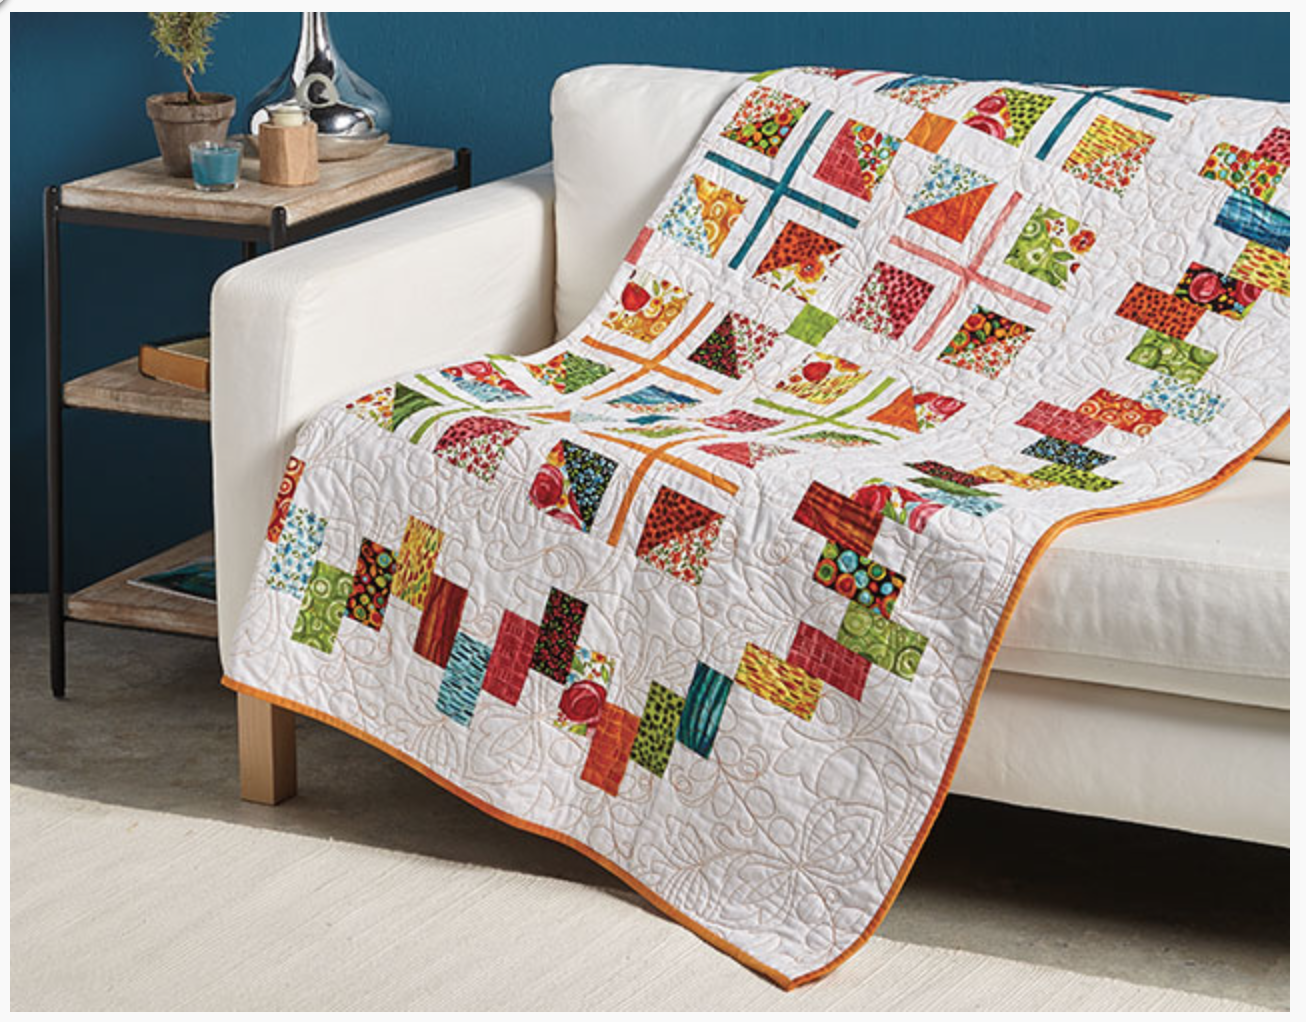 Learn to Make Scrappy Borders online class – Annie Smith : learn how to quilt online - Adamdwight.com